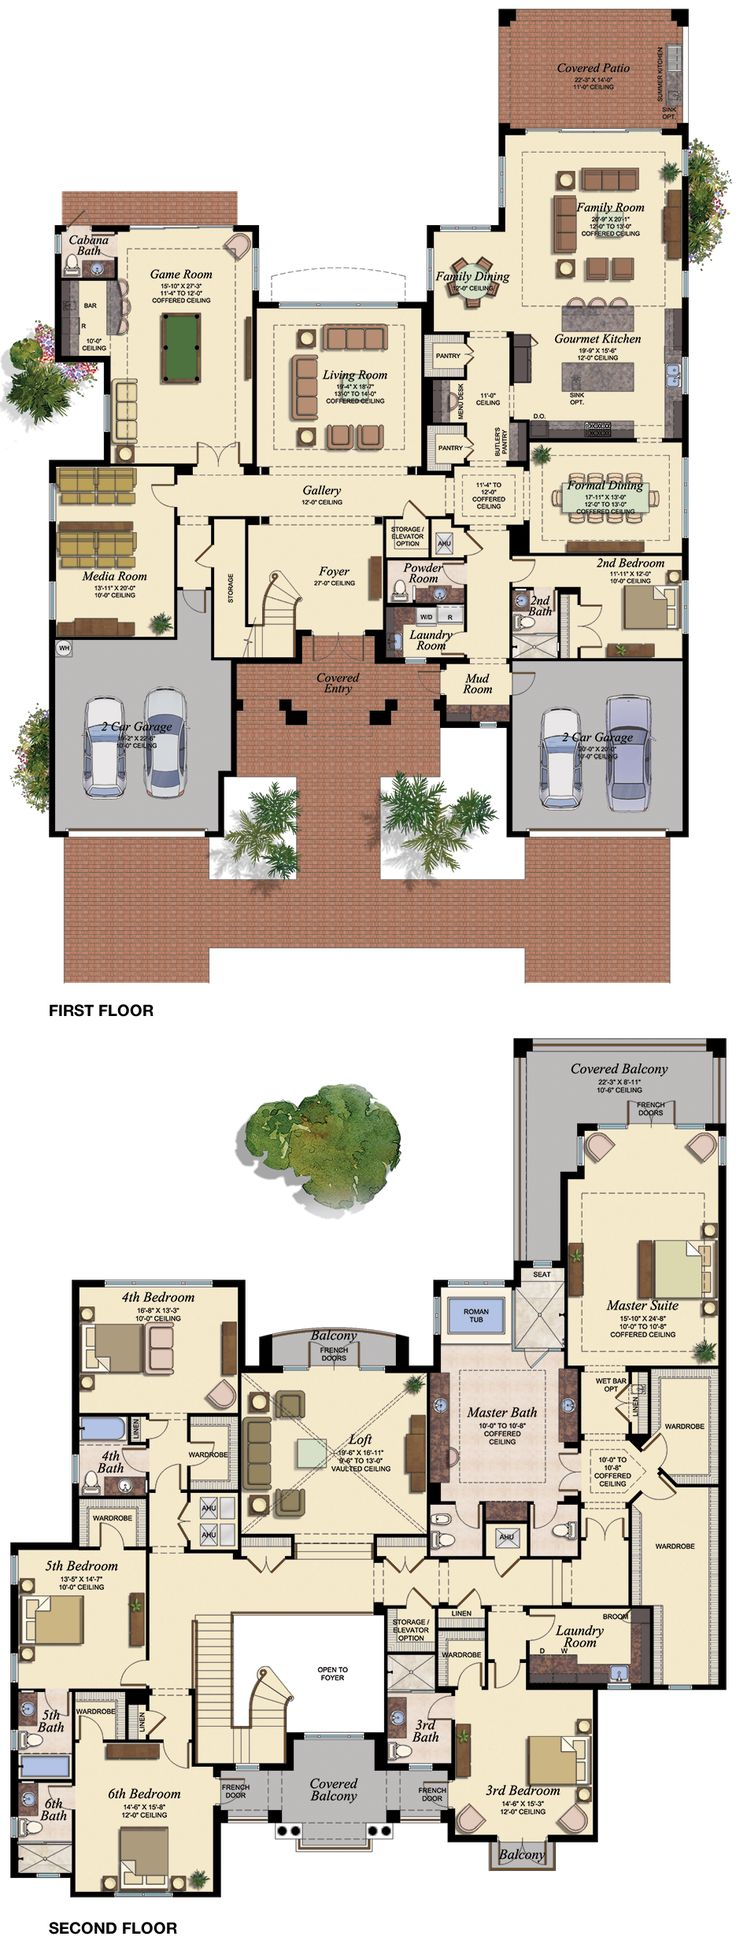 2 Story House Floor Plans With Basement best 25+ 2 story homes ideas on pinterest | two story homes, big